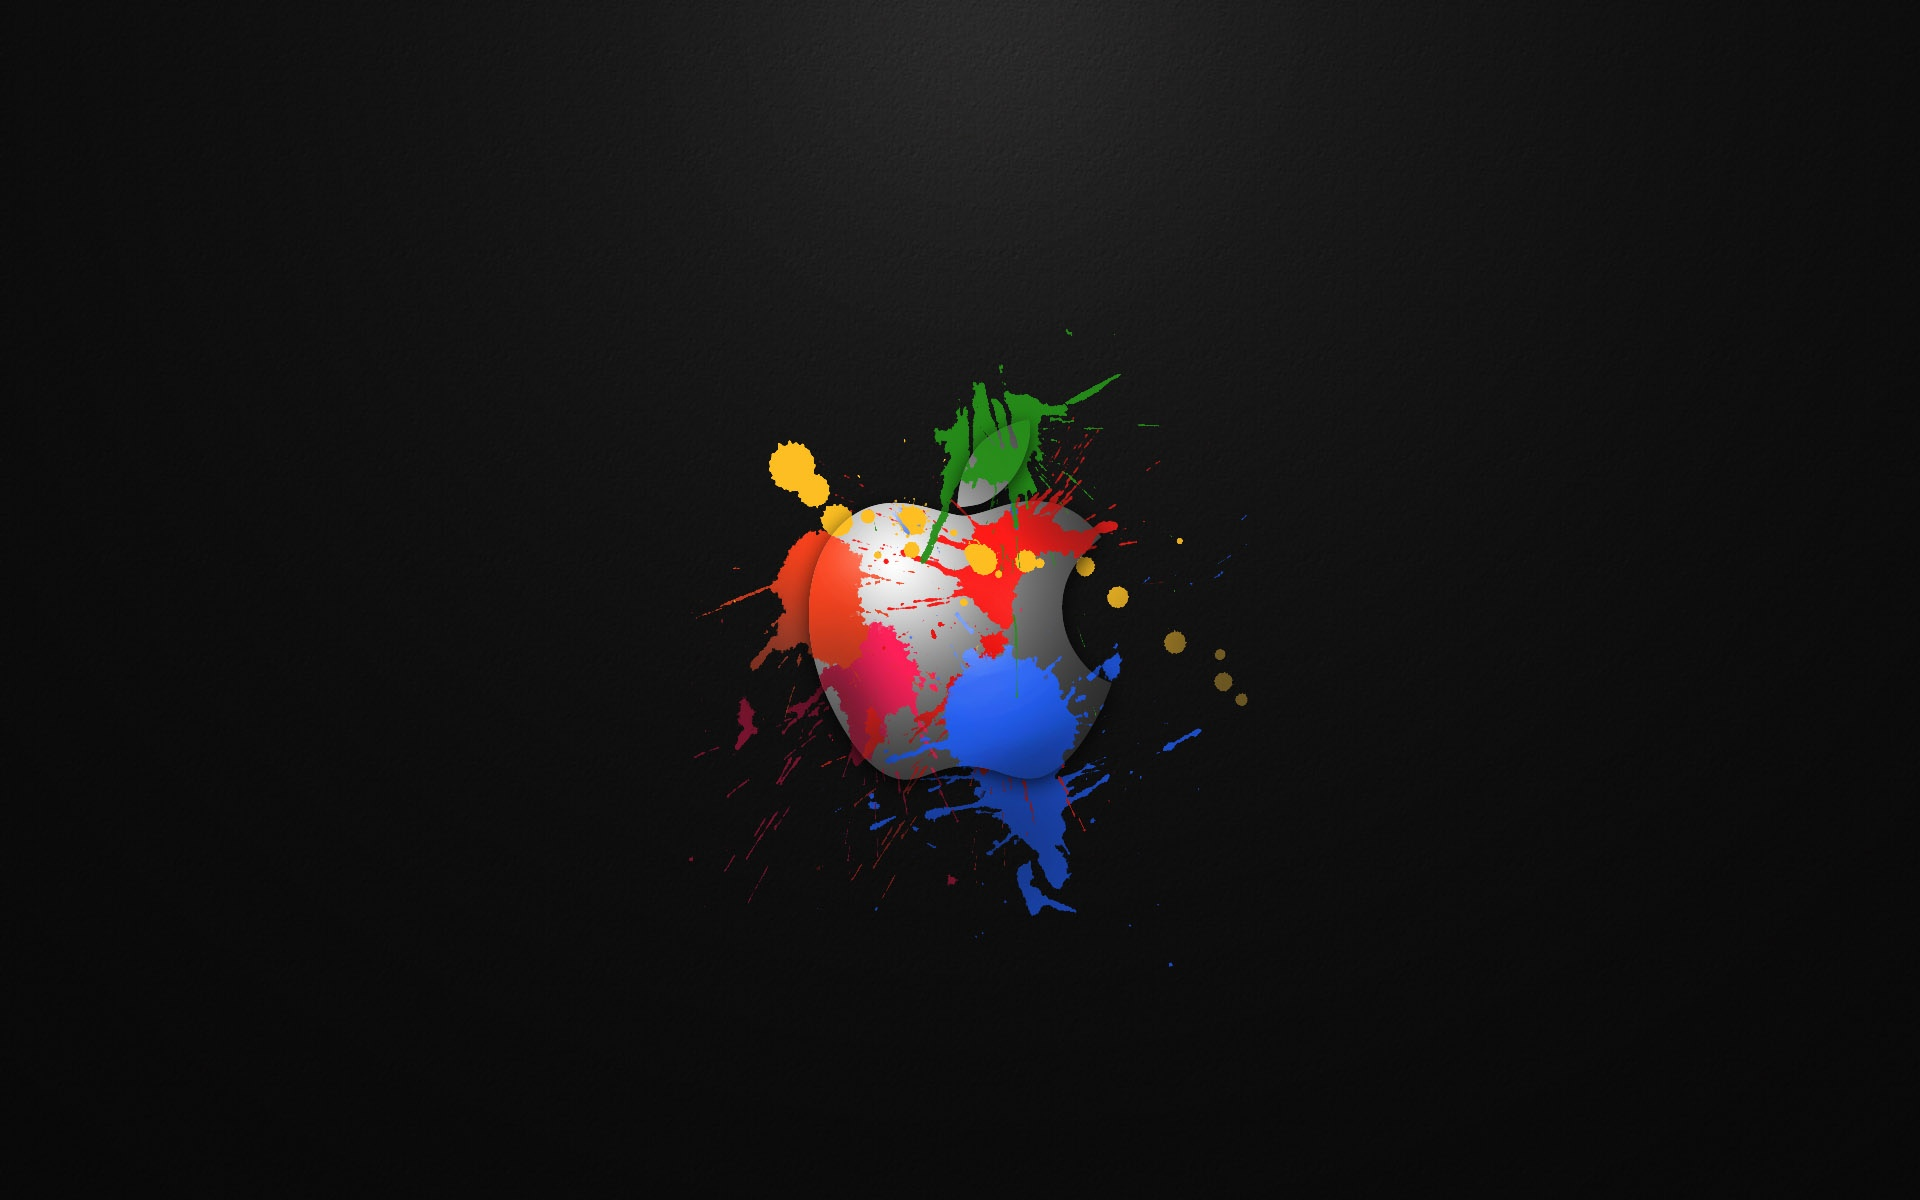 1920x1200 Iphone 5 Apple Colours Cartoon Desktop Pc And